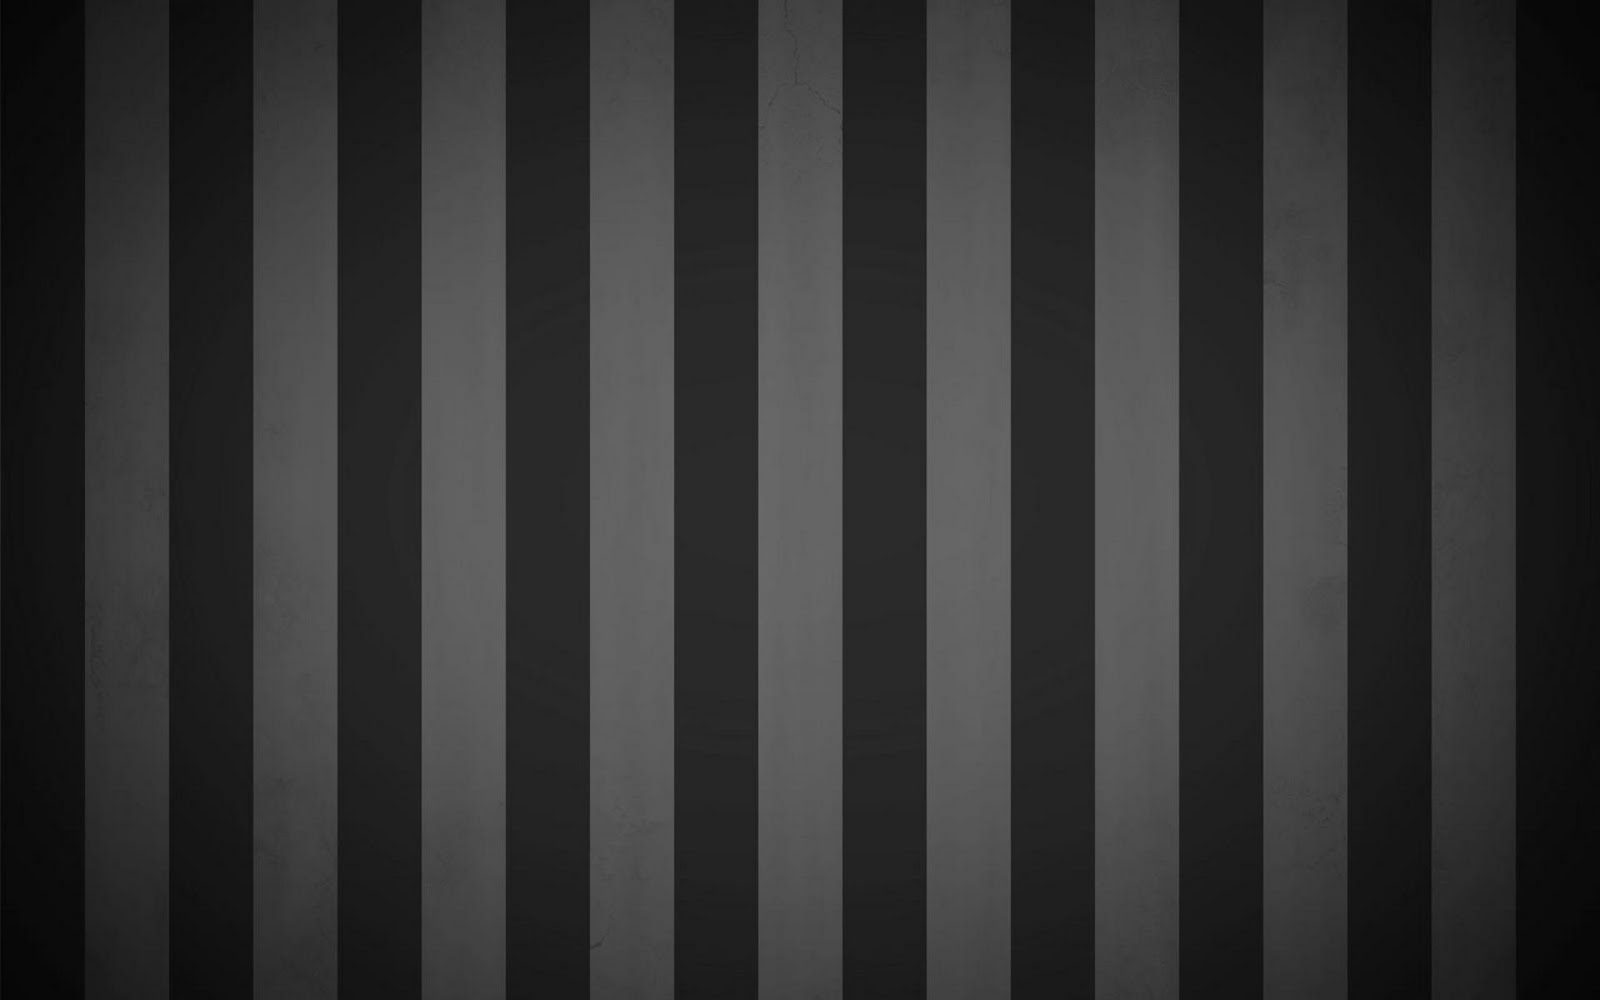 Black Grey White Striped Wallpaper